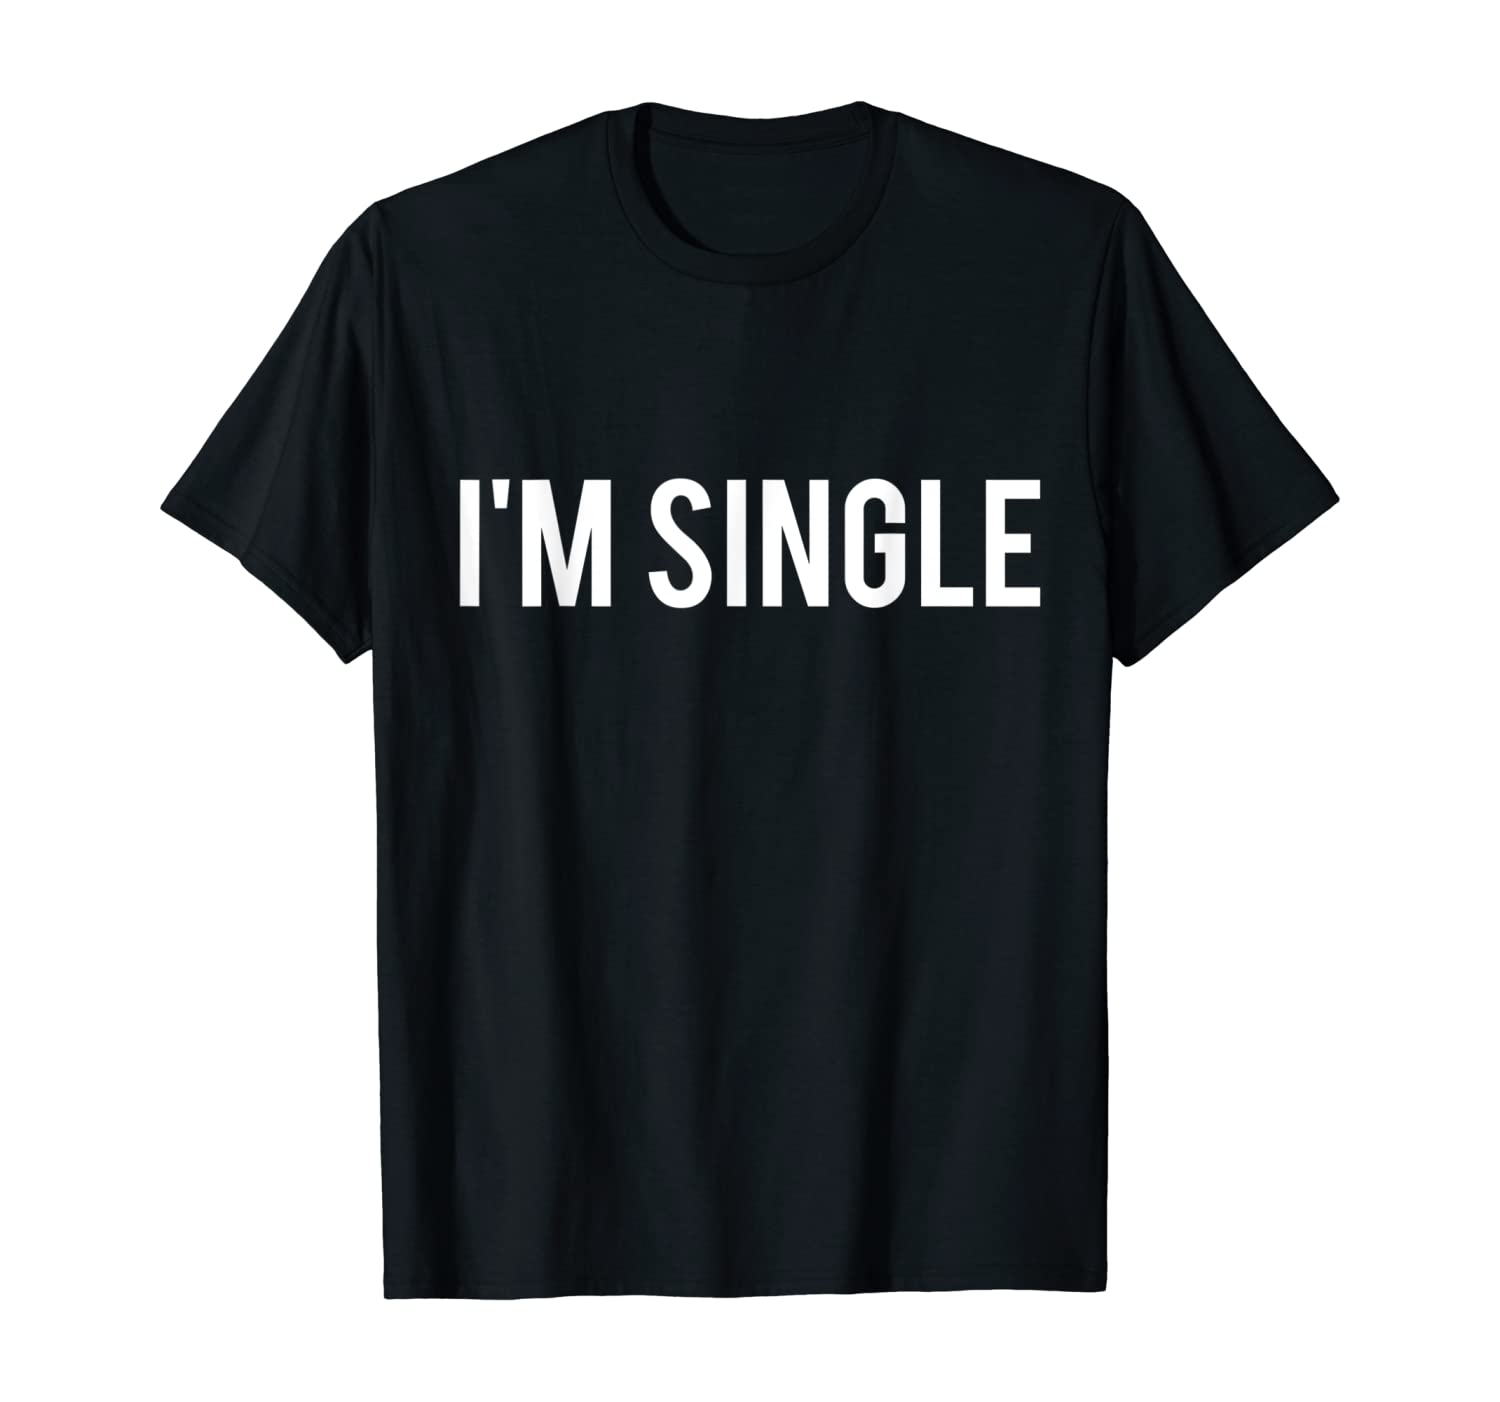 I'm Single T-Shirt - Funny Sarcastic Dating